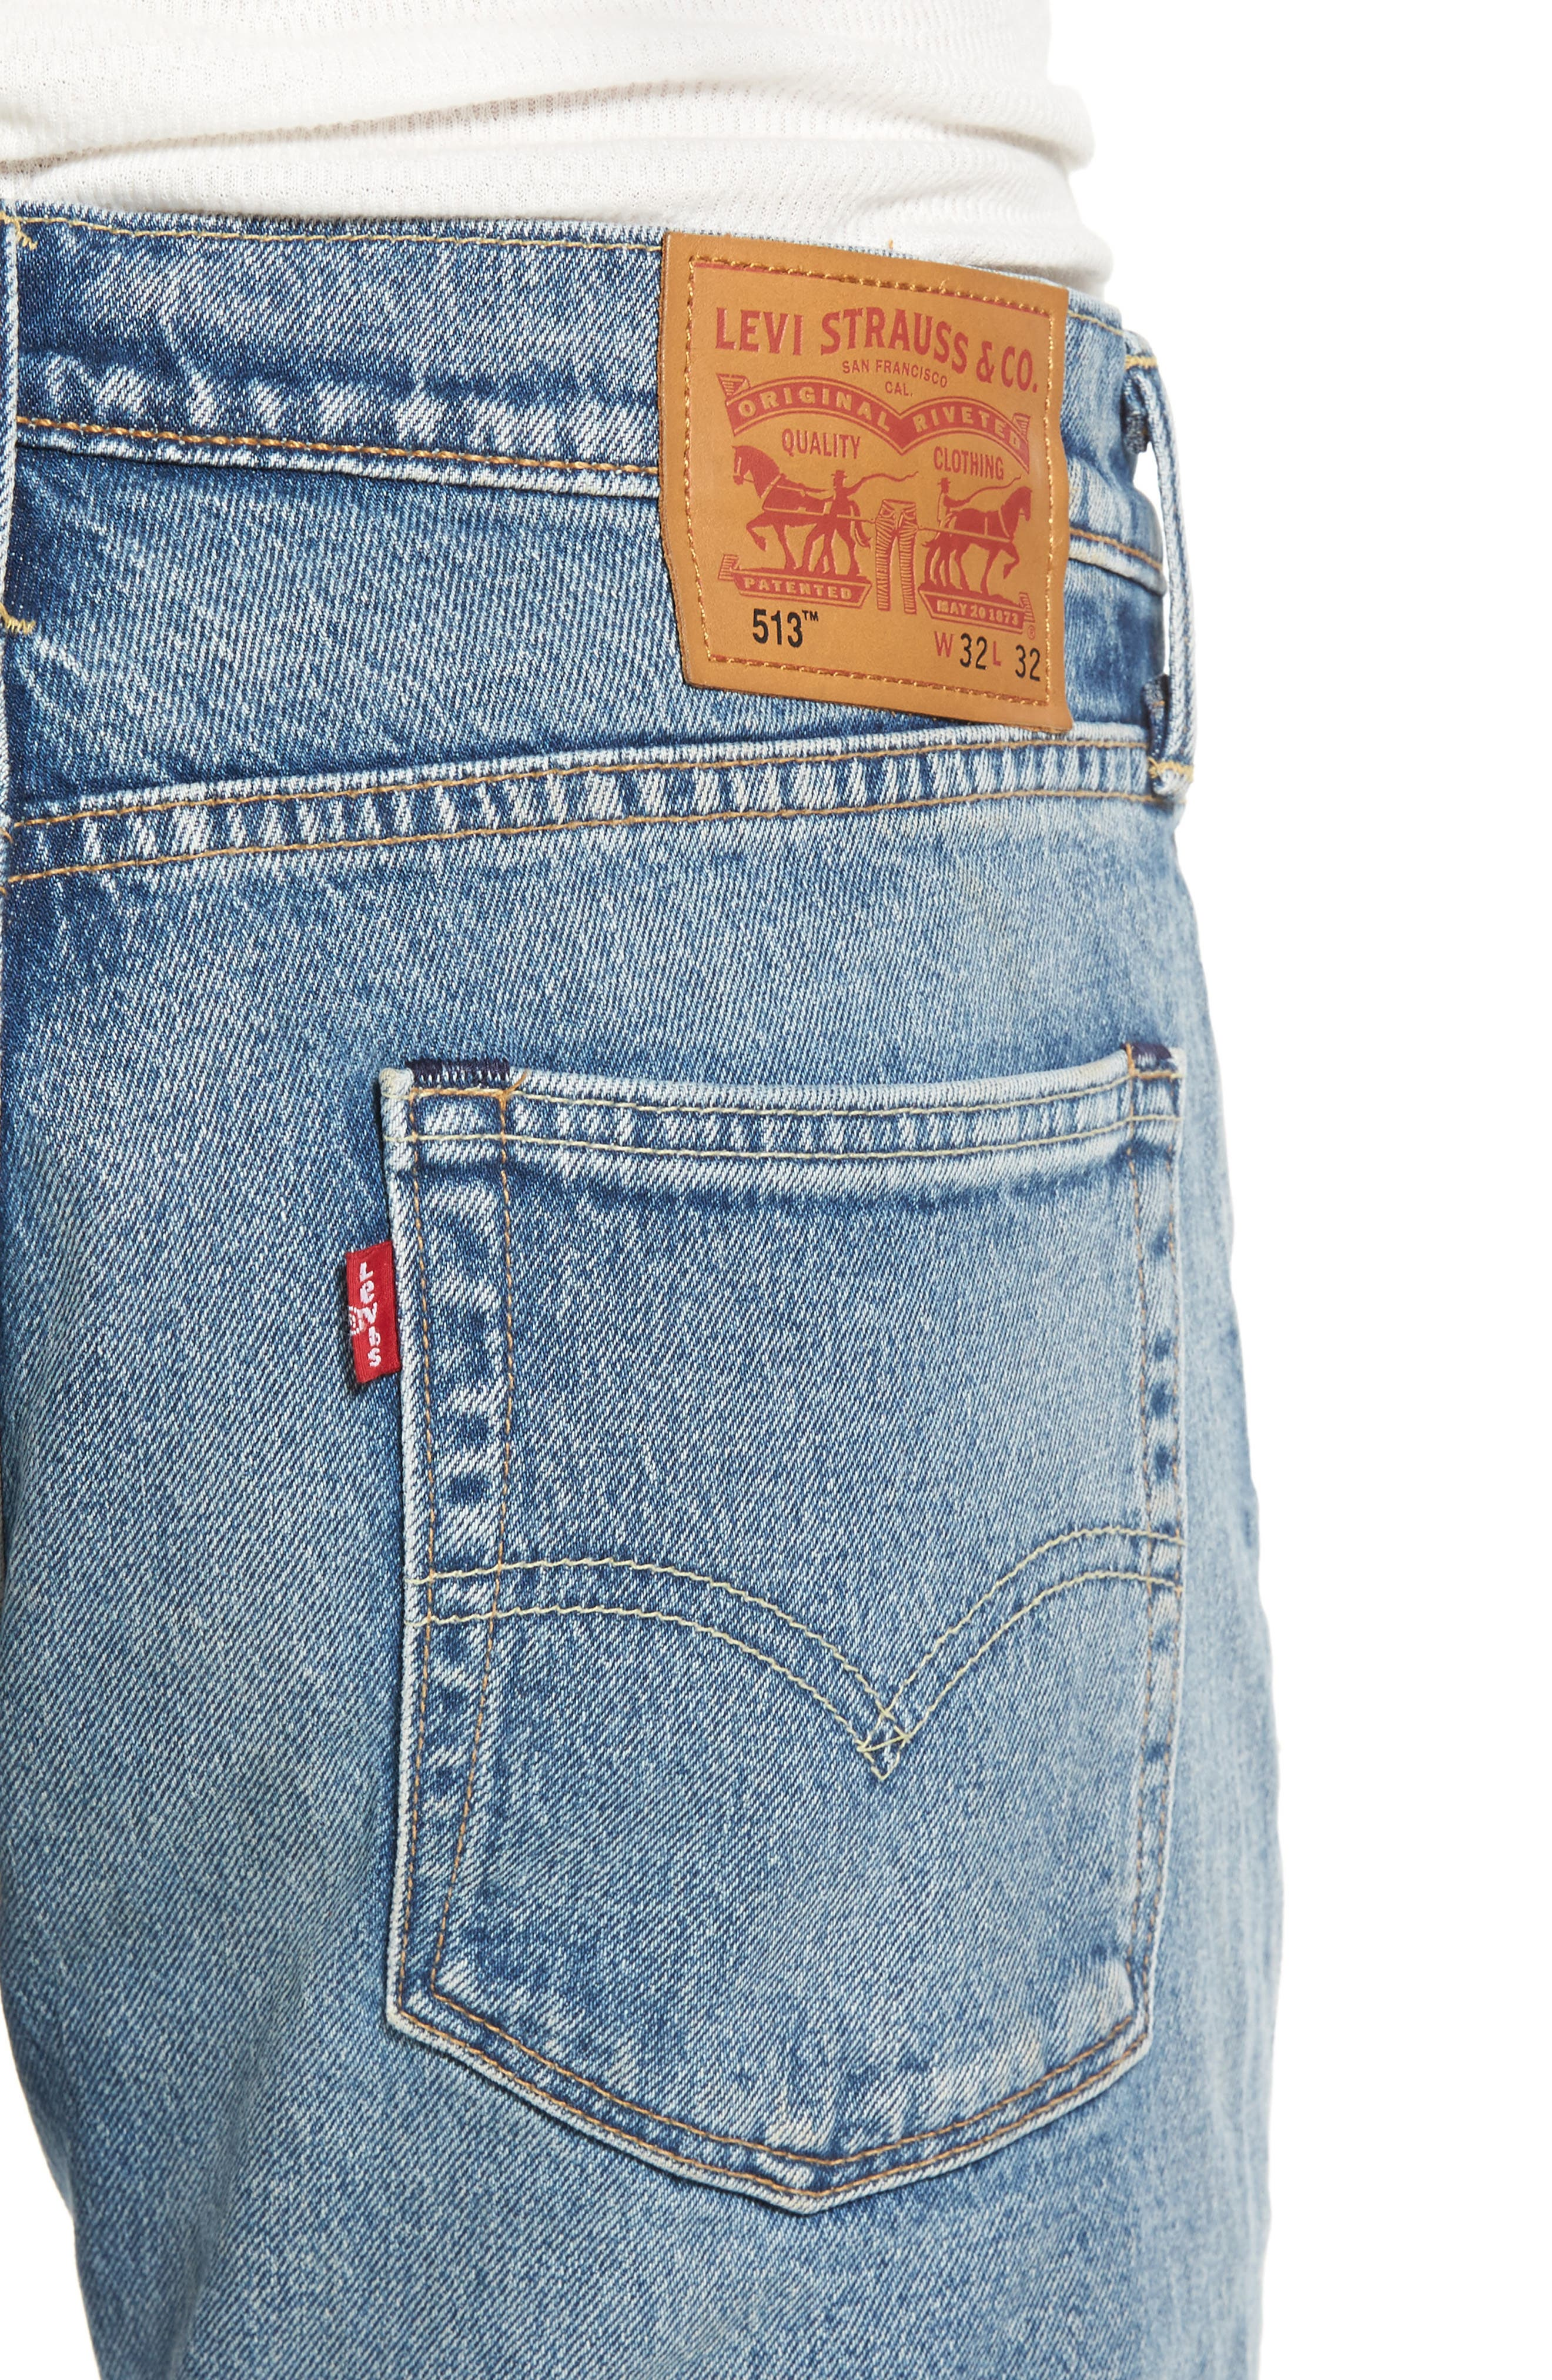 513<sup>™</sup> Slim Straight Leg Jeans,                             Alternate thumbnail 4, color,                             451